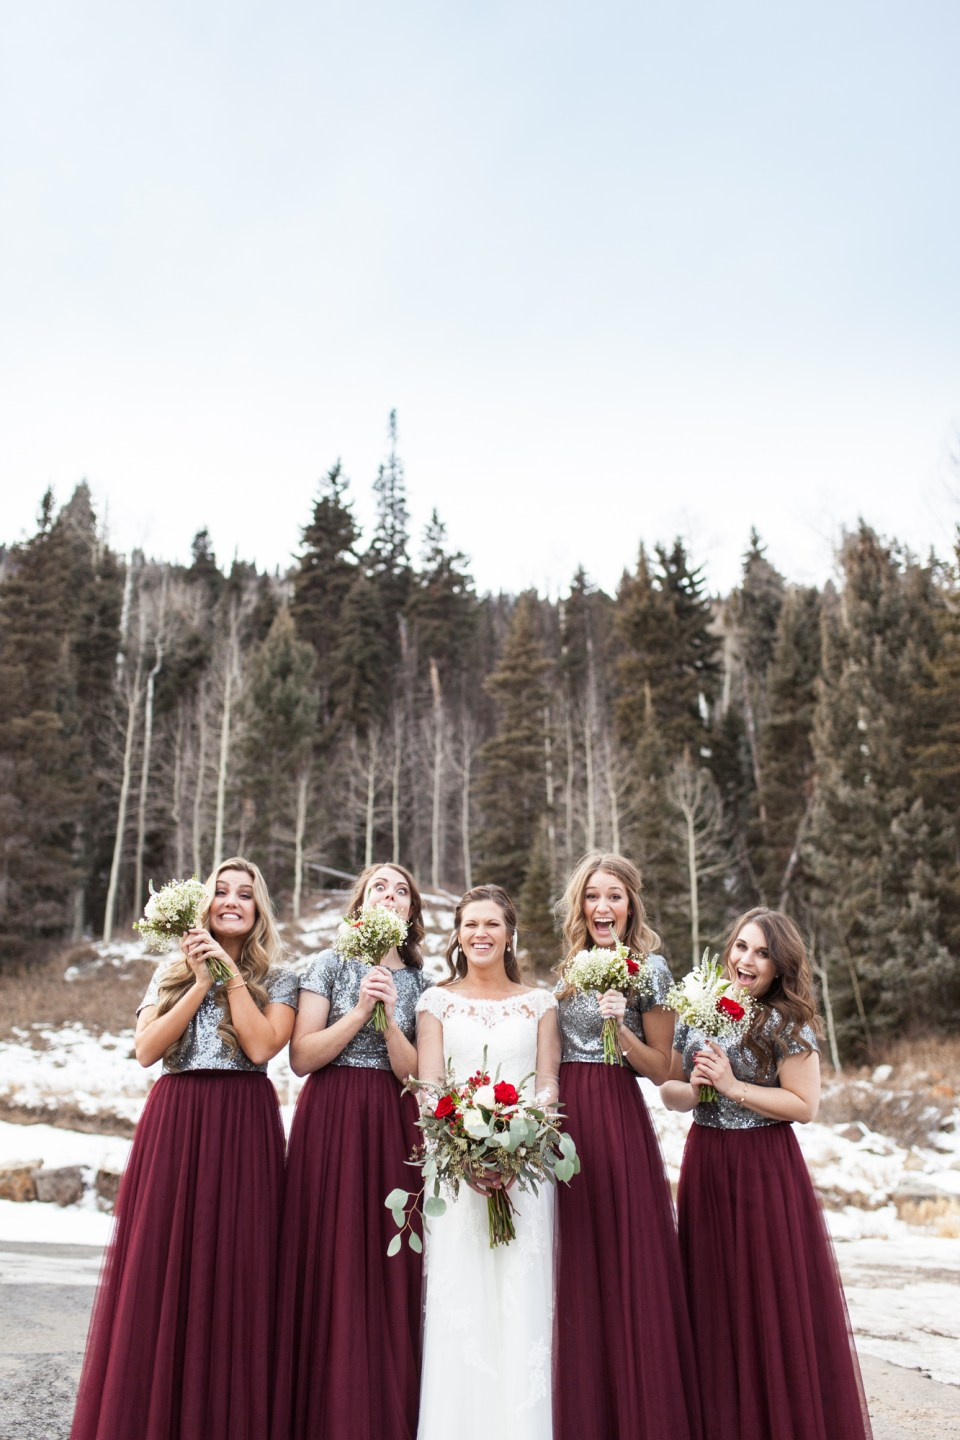 maroon and sequins bridesmaids dresses for winter wedding ideas, durango colorado winter wedding inspiration, laughing bridesmaids